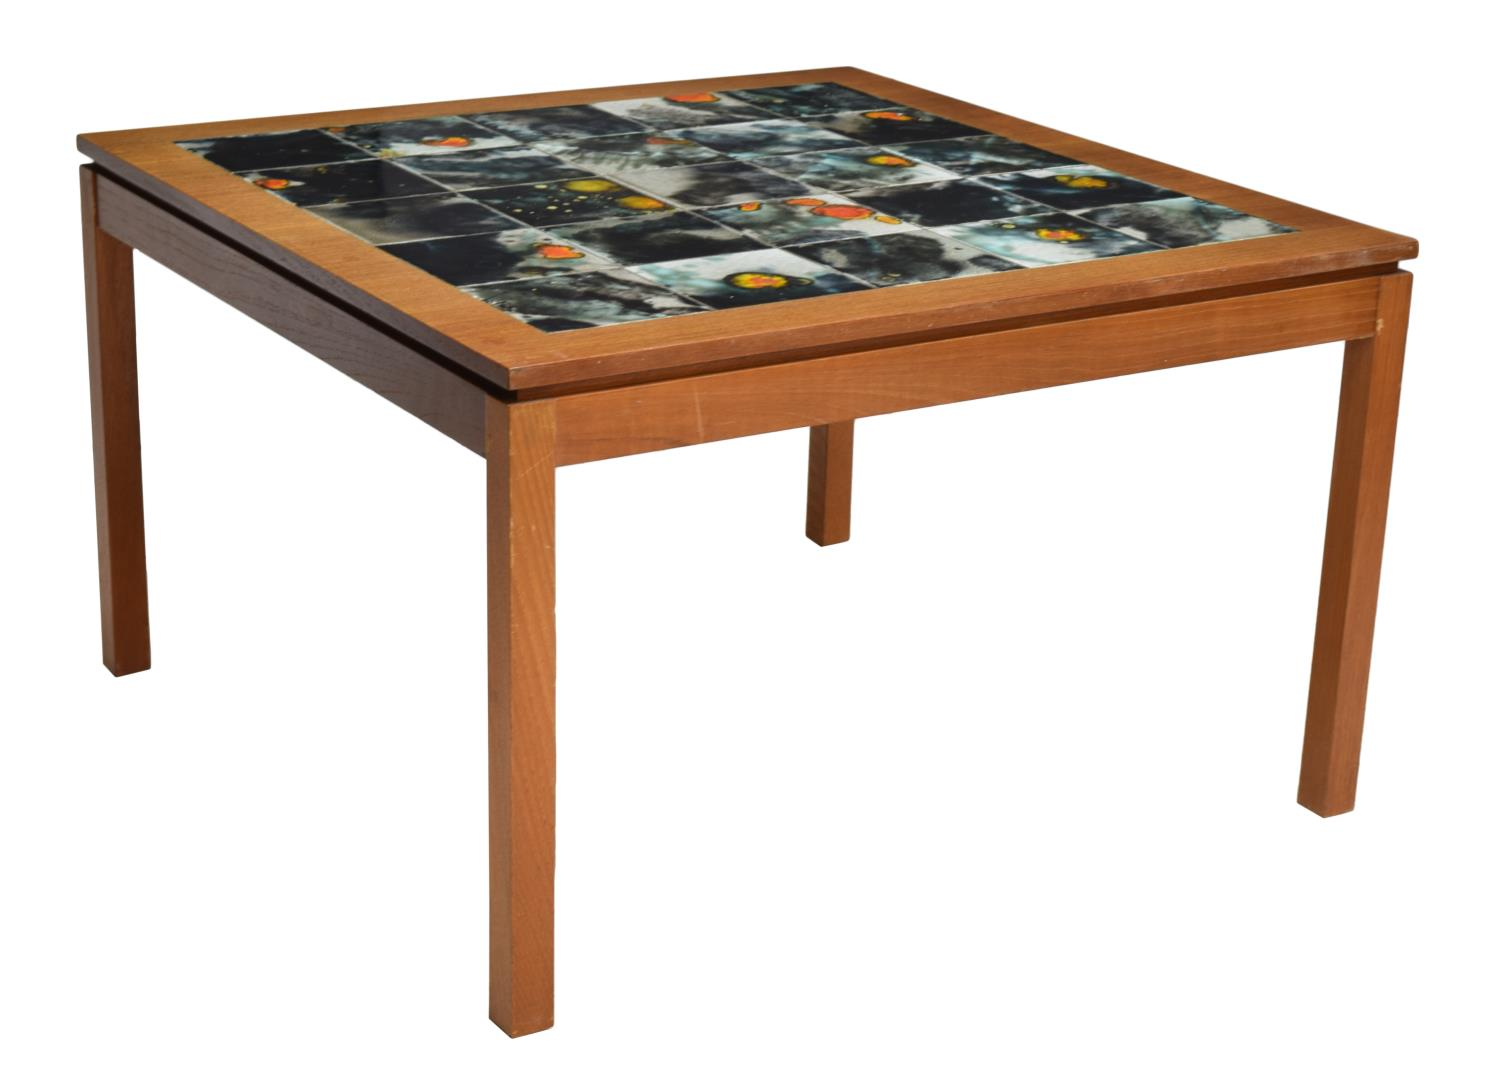 Danish mid century modern teak tile coffee table august estates auction day one austin Modern teak coffee table